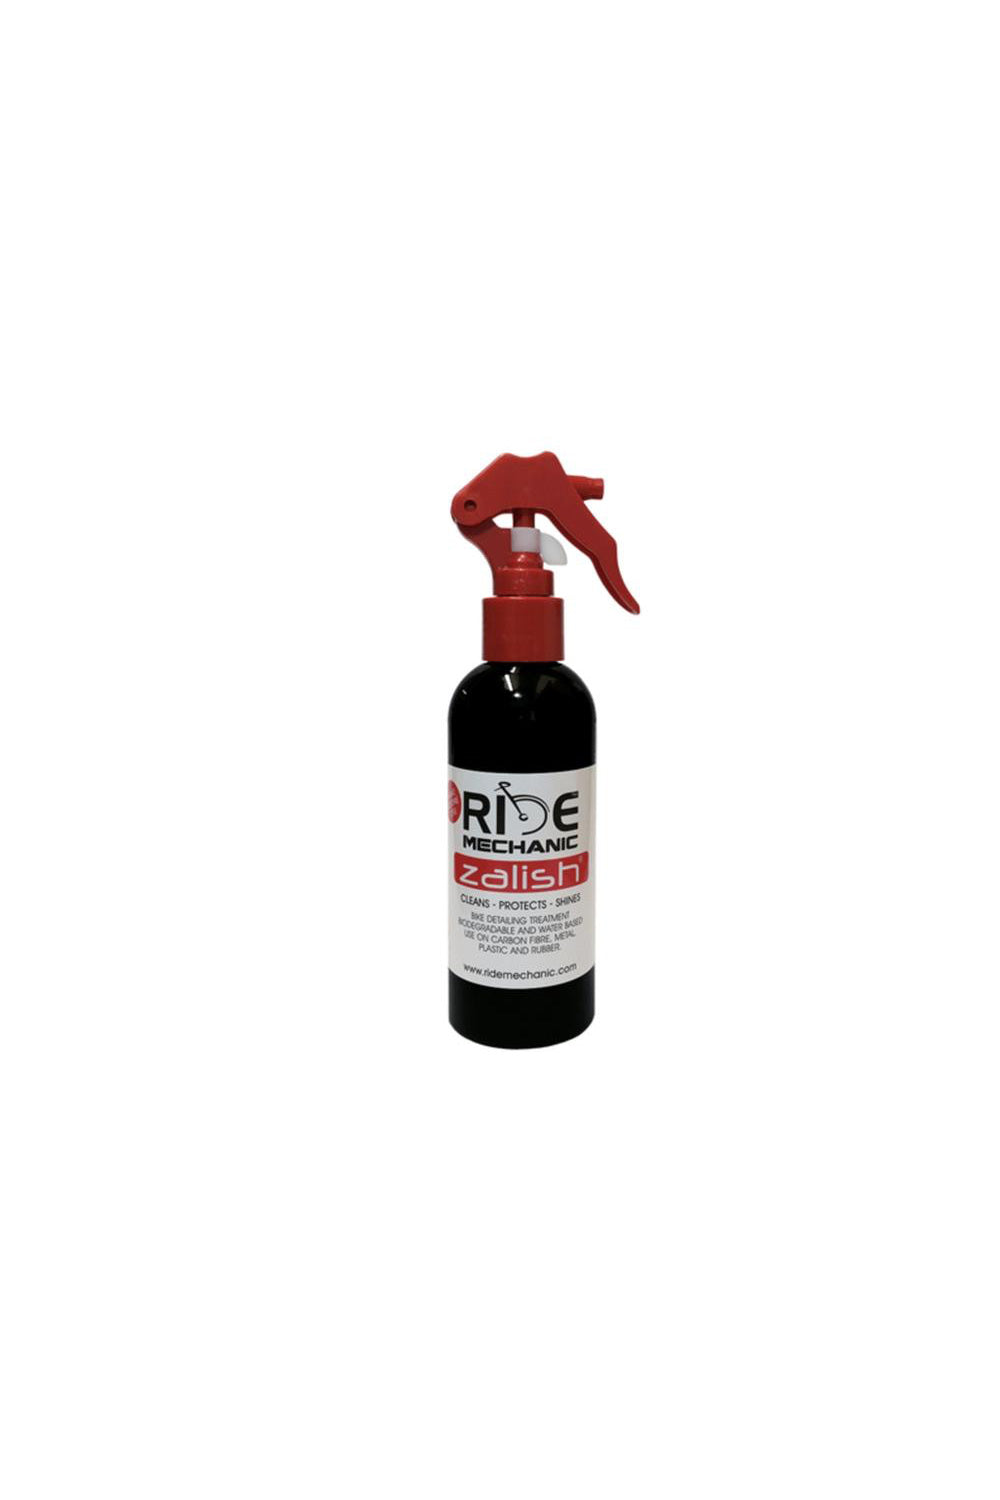 Ride Mechanic Zalish 200ml Bike Polish Liquid